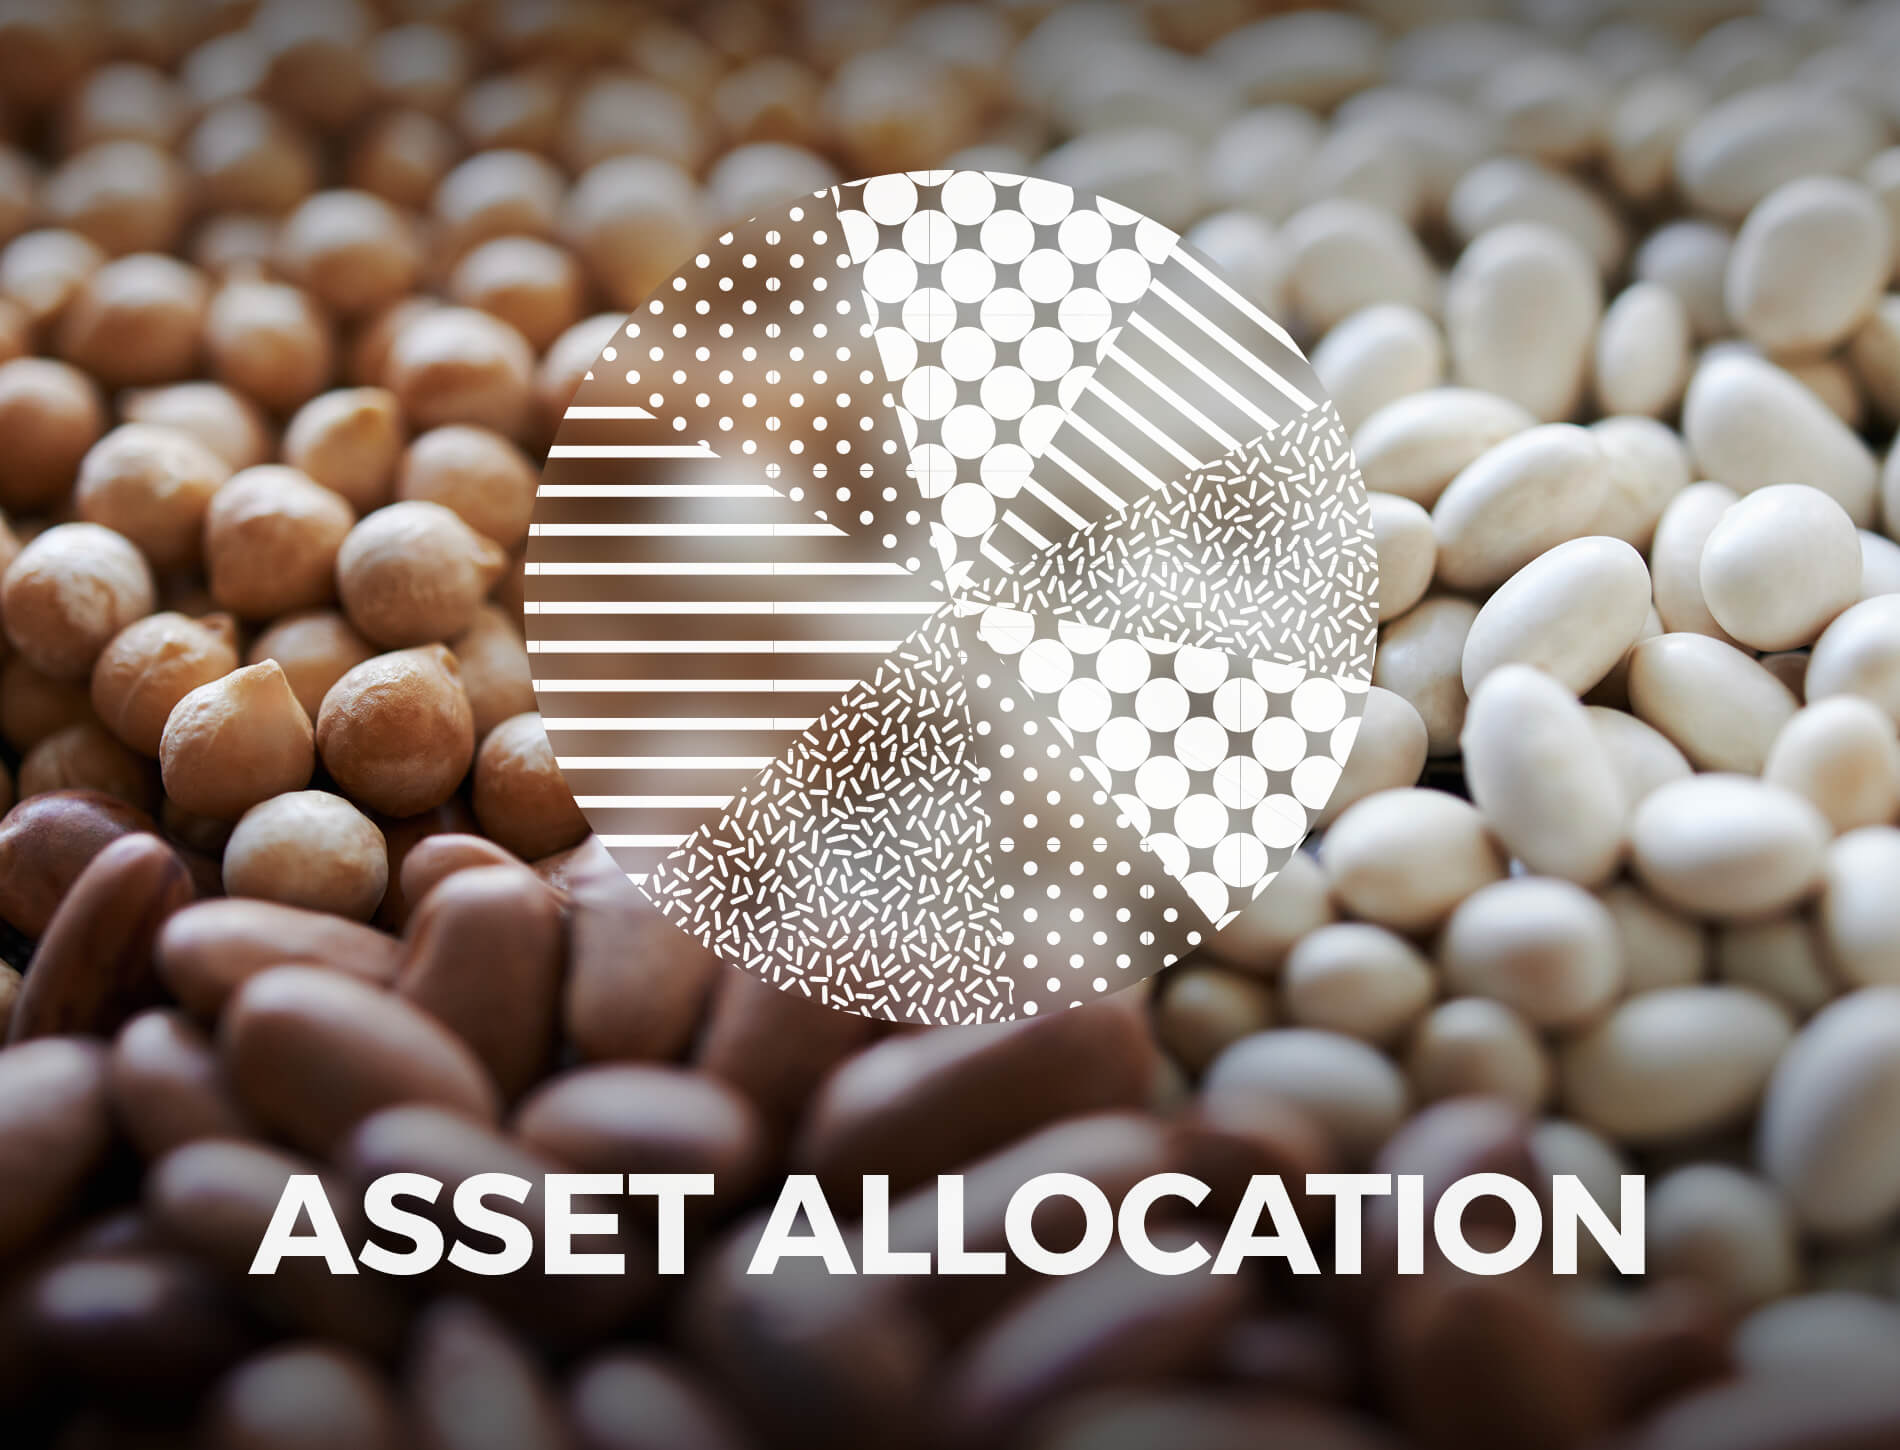 <p>Asset Allocation</p>